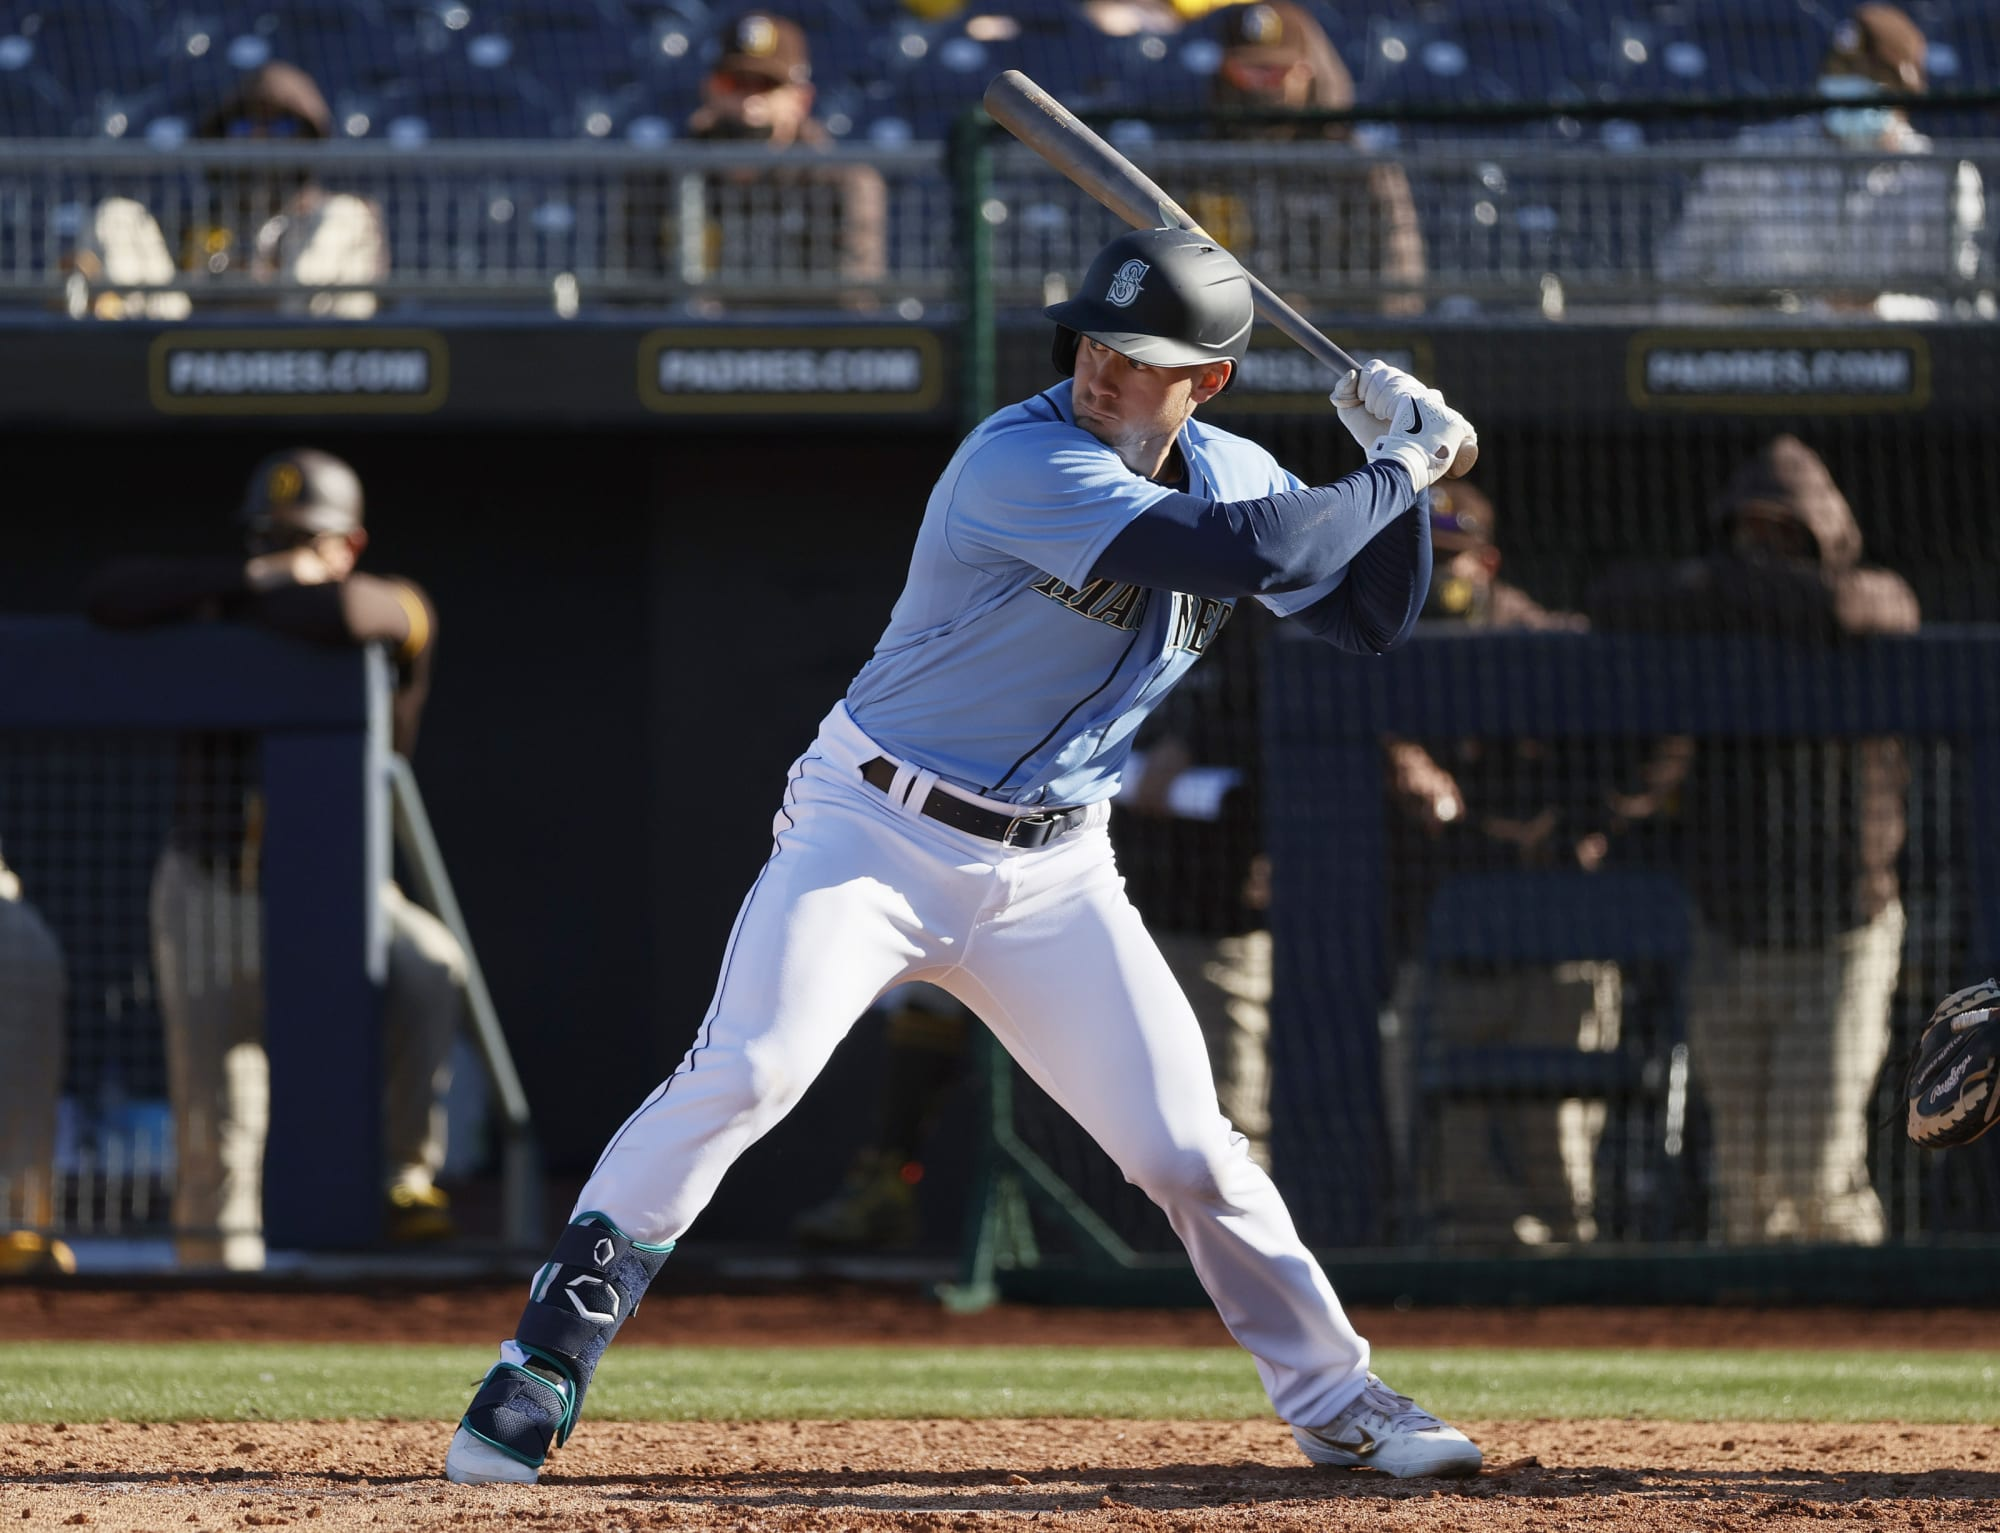 Lots of home runs from the Mariners: Kelenic and Trammell homer